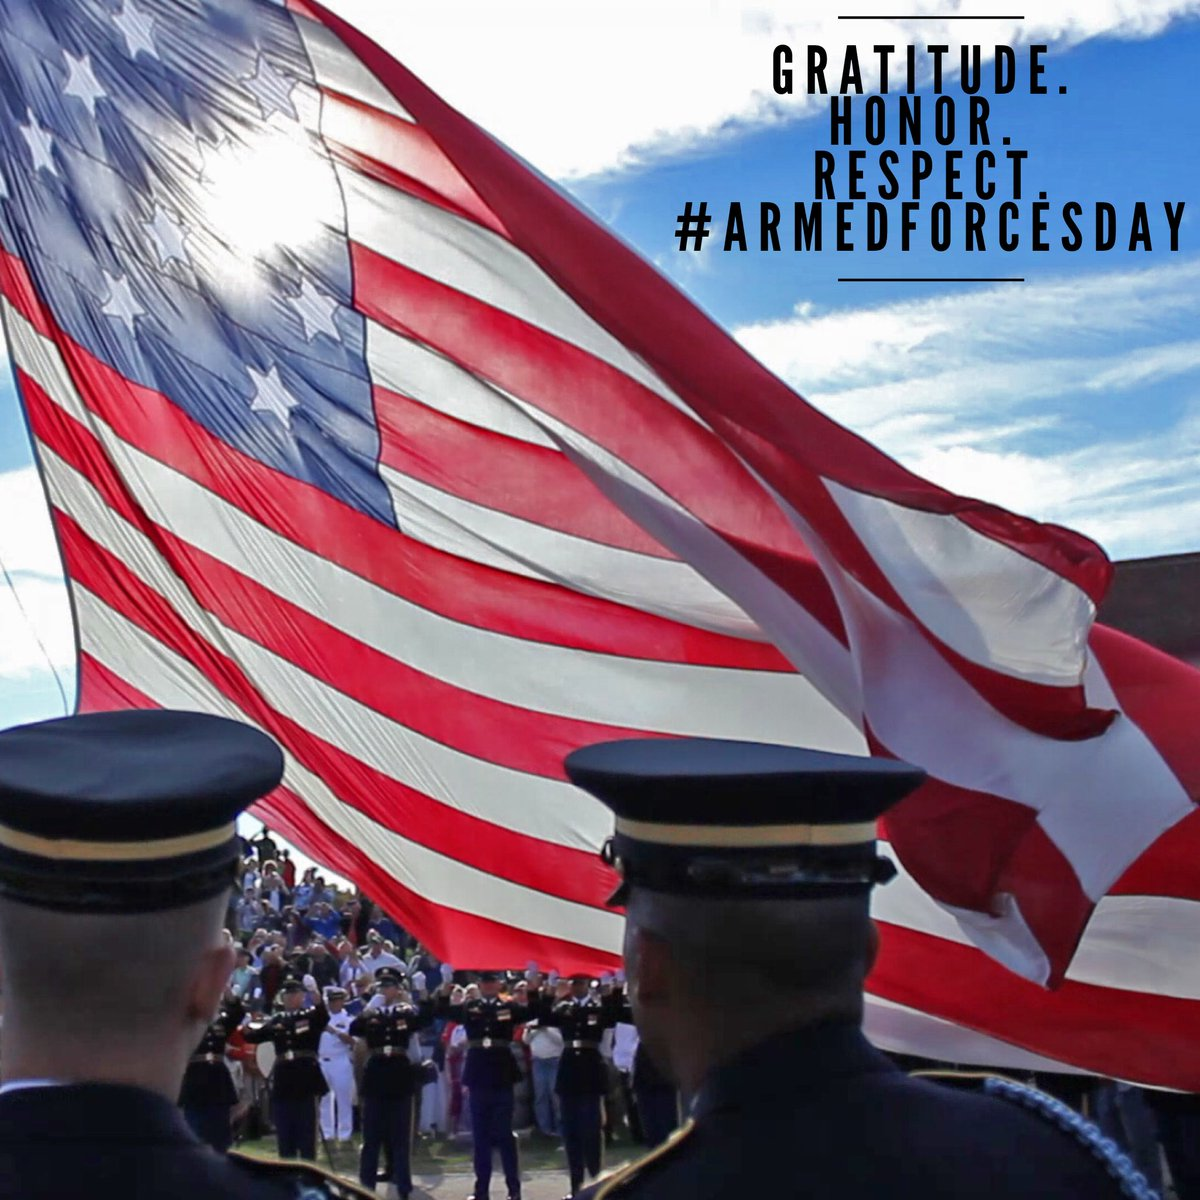 To all currently serving, it is with great gratitude and respect that we honor you today. #ArmedForcesDay